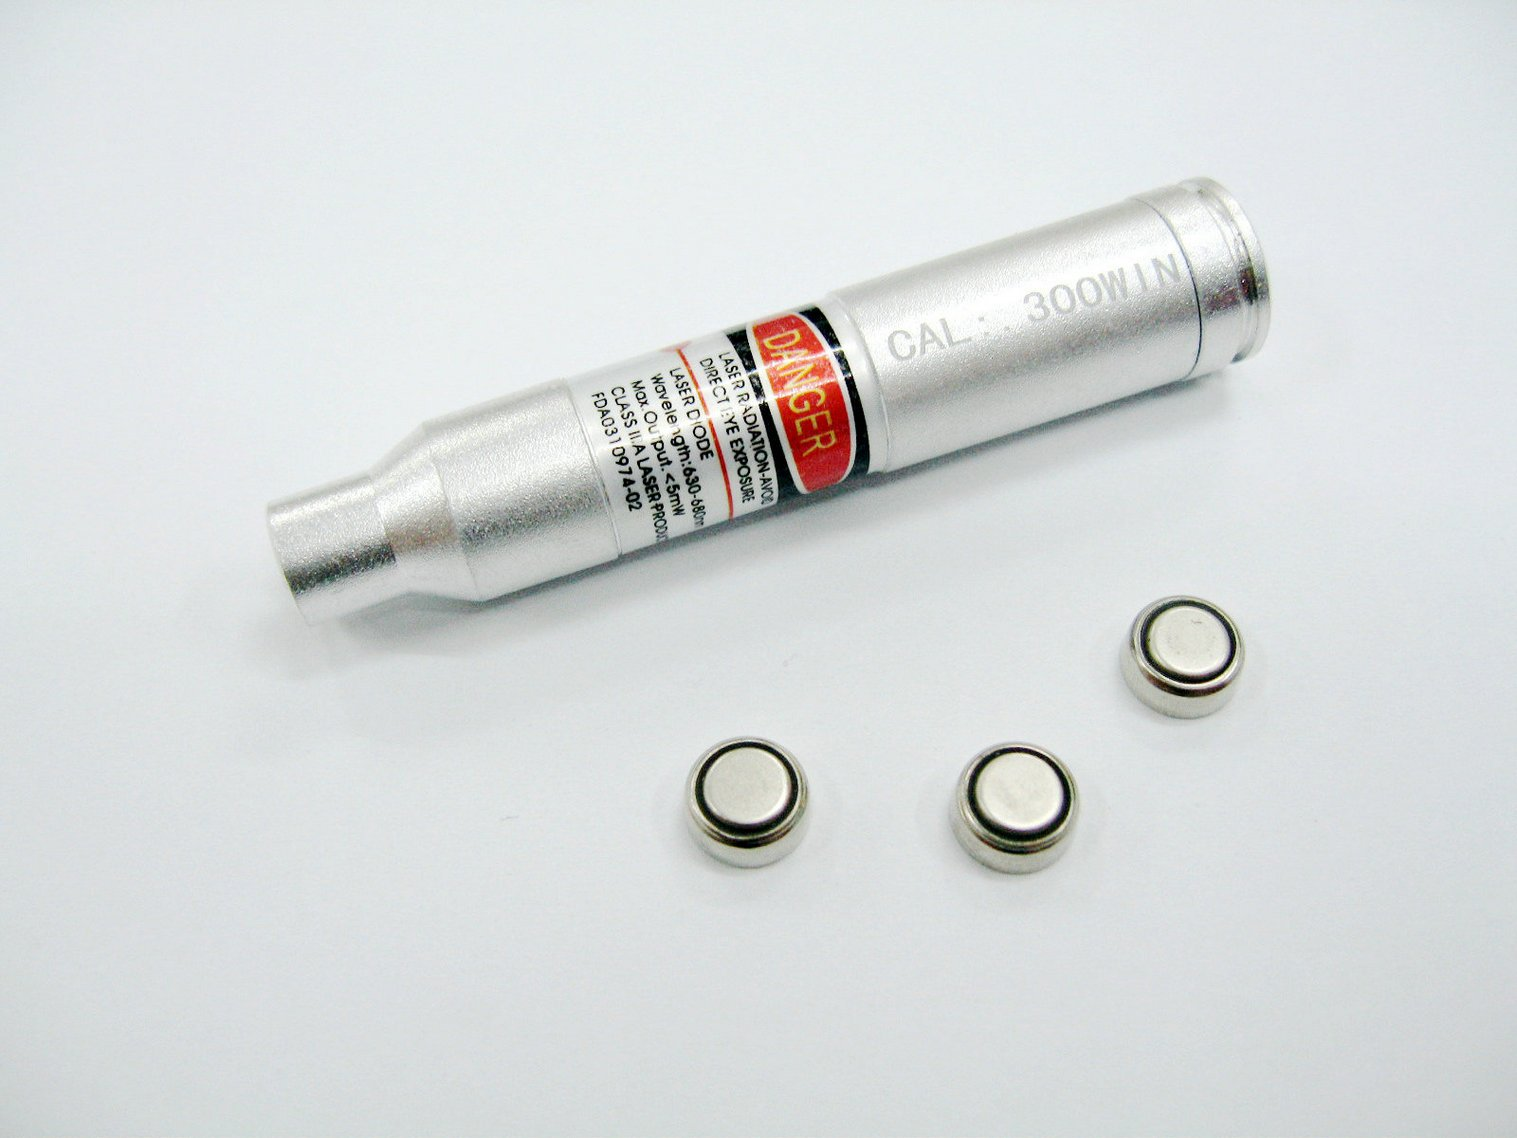 Picture of A Laser Boresighter